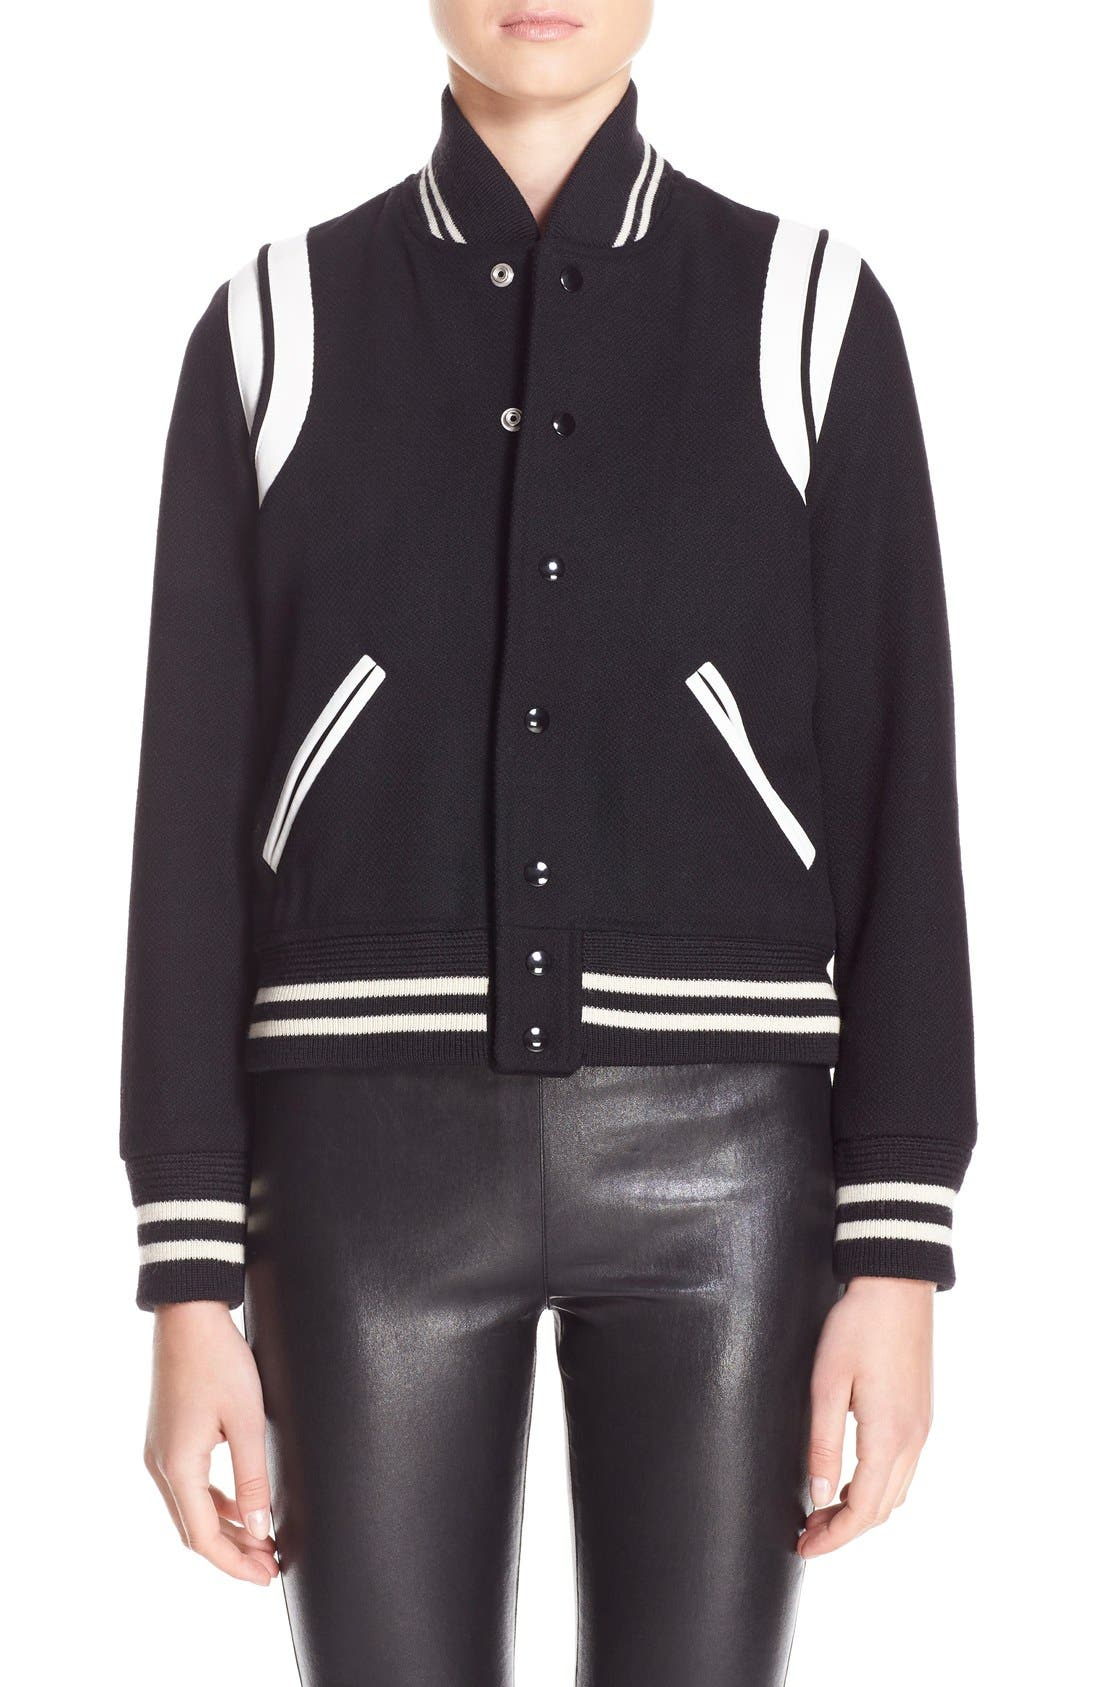 'Teddy' White Leather Trim Bomber Jacket,                             Main thumbnail 1, color,                             BLACK WHITE